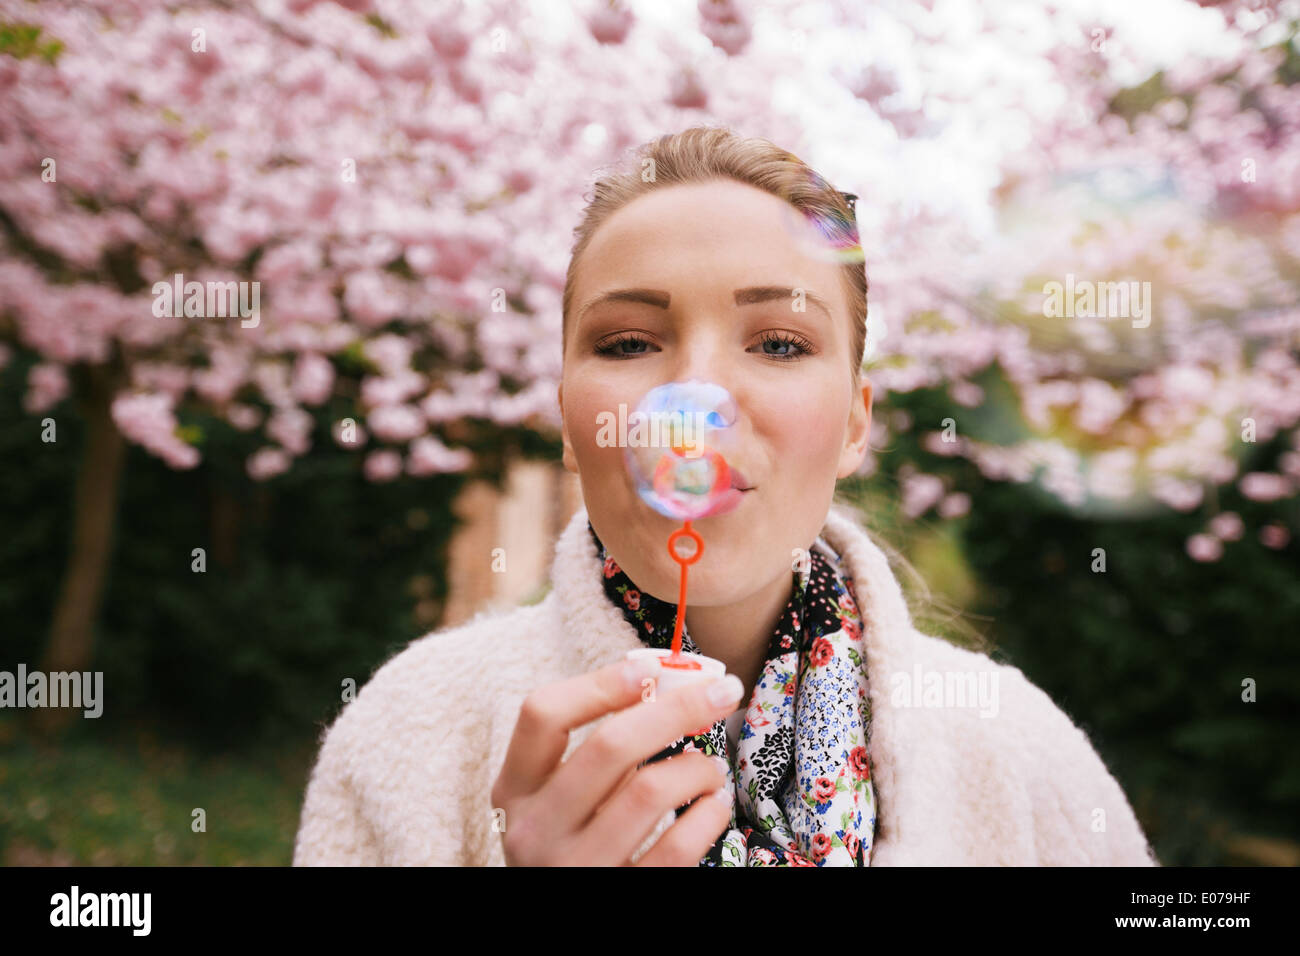 Portrait of beautiful young woman blowing bubbles at park. Pretty female model with bubble wand at spring blossom garden. - Stock Image